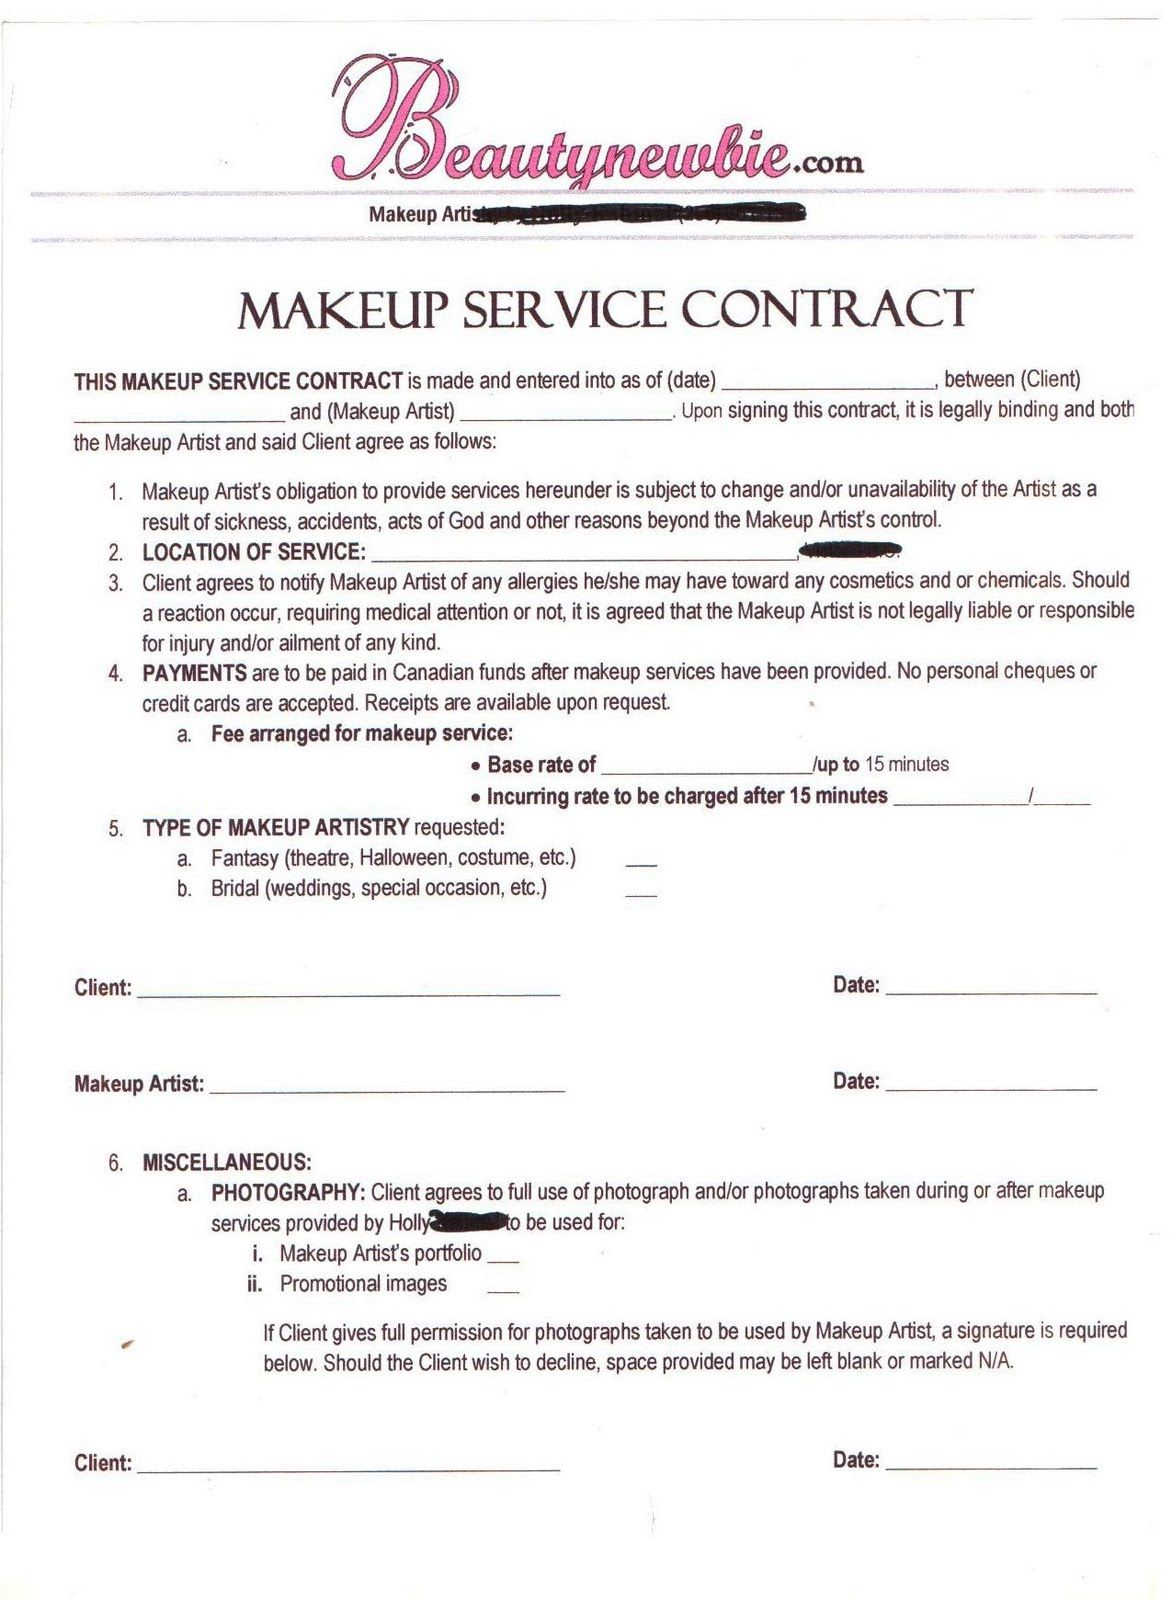 Contract MAKEUP ARTIST Pinterest